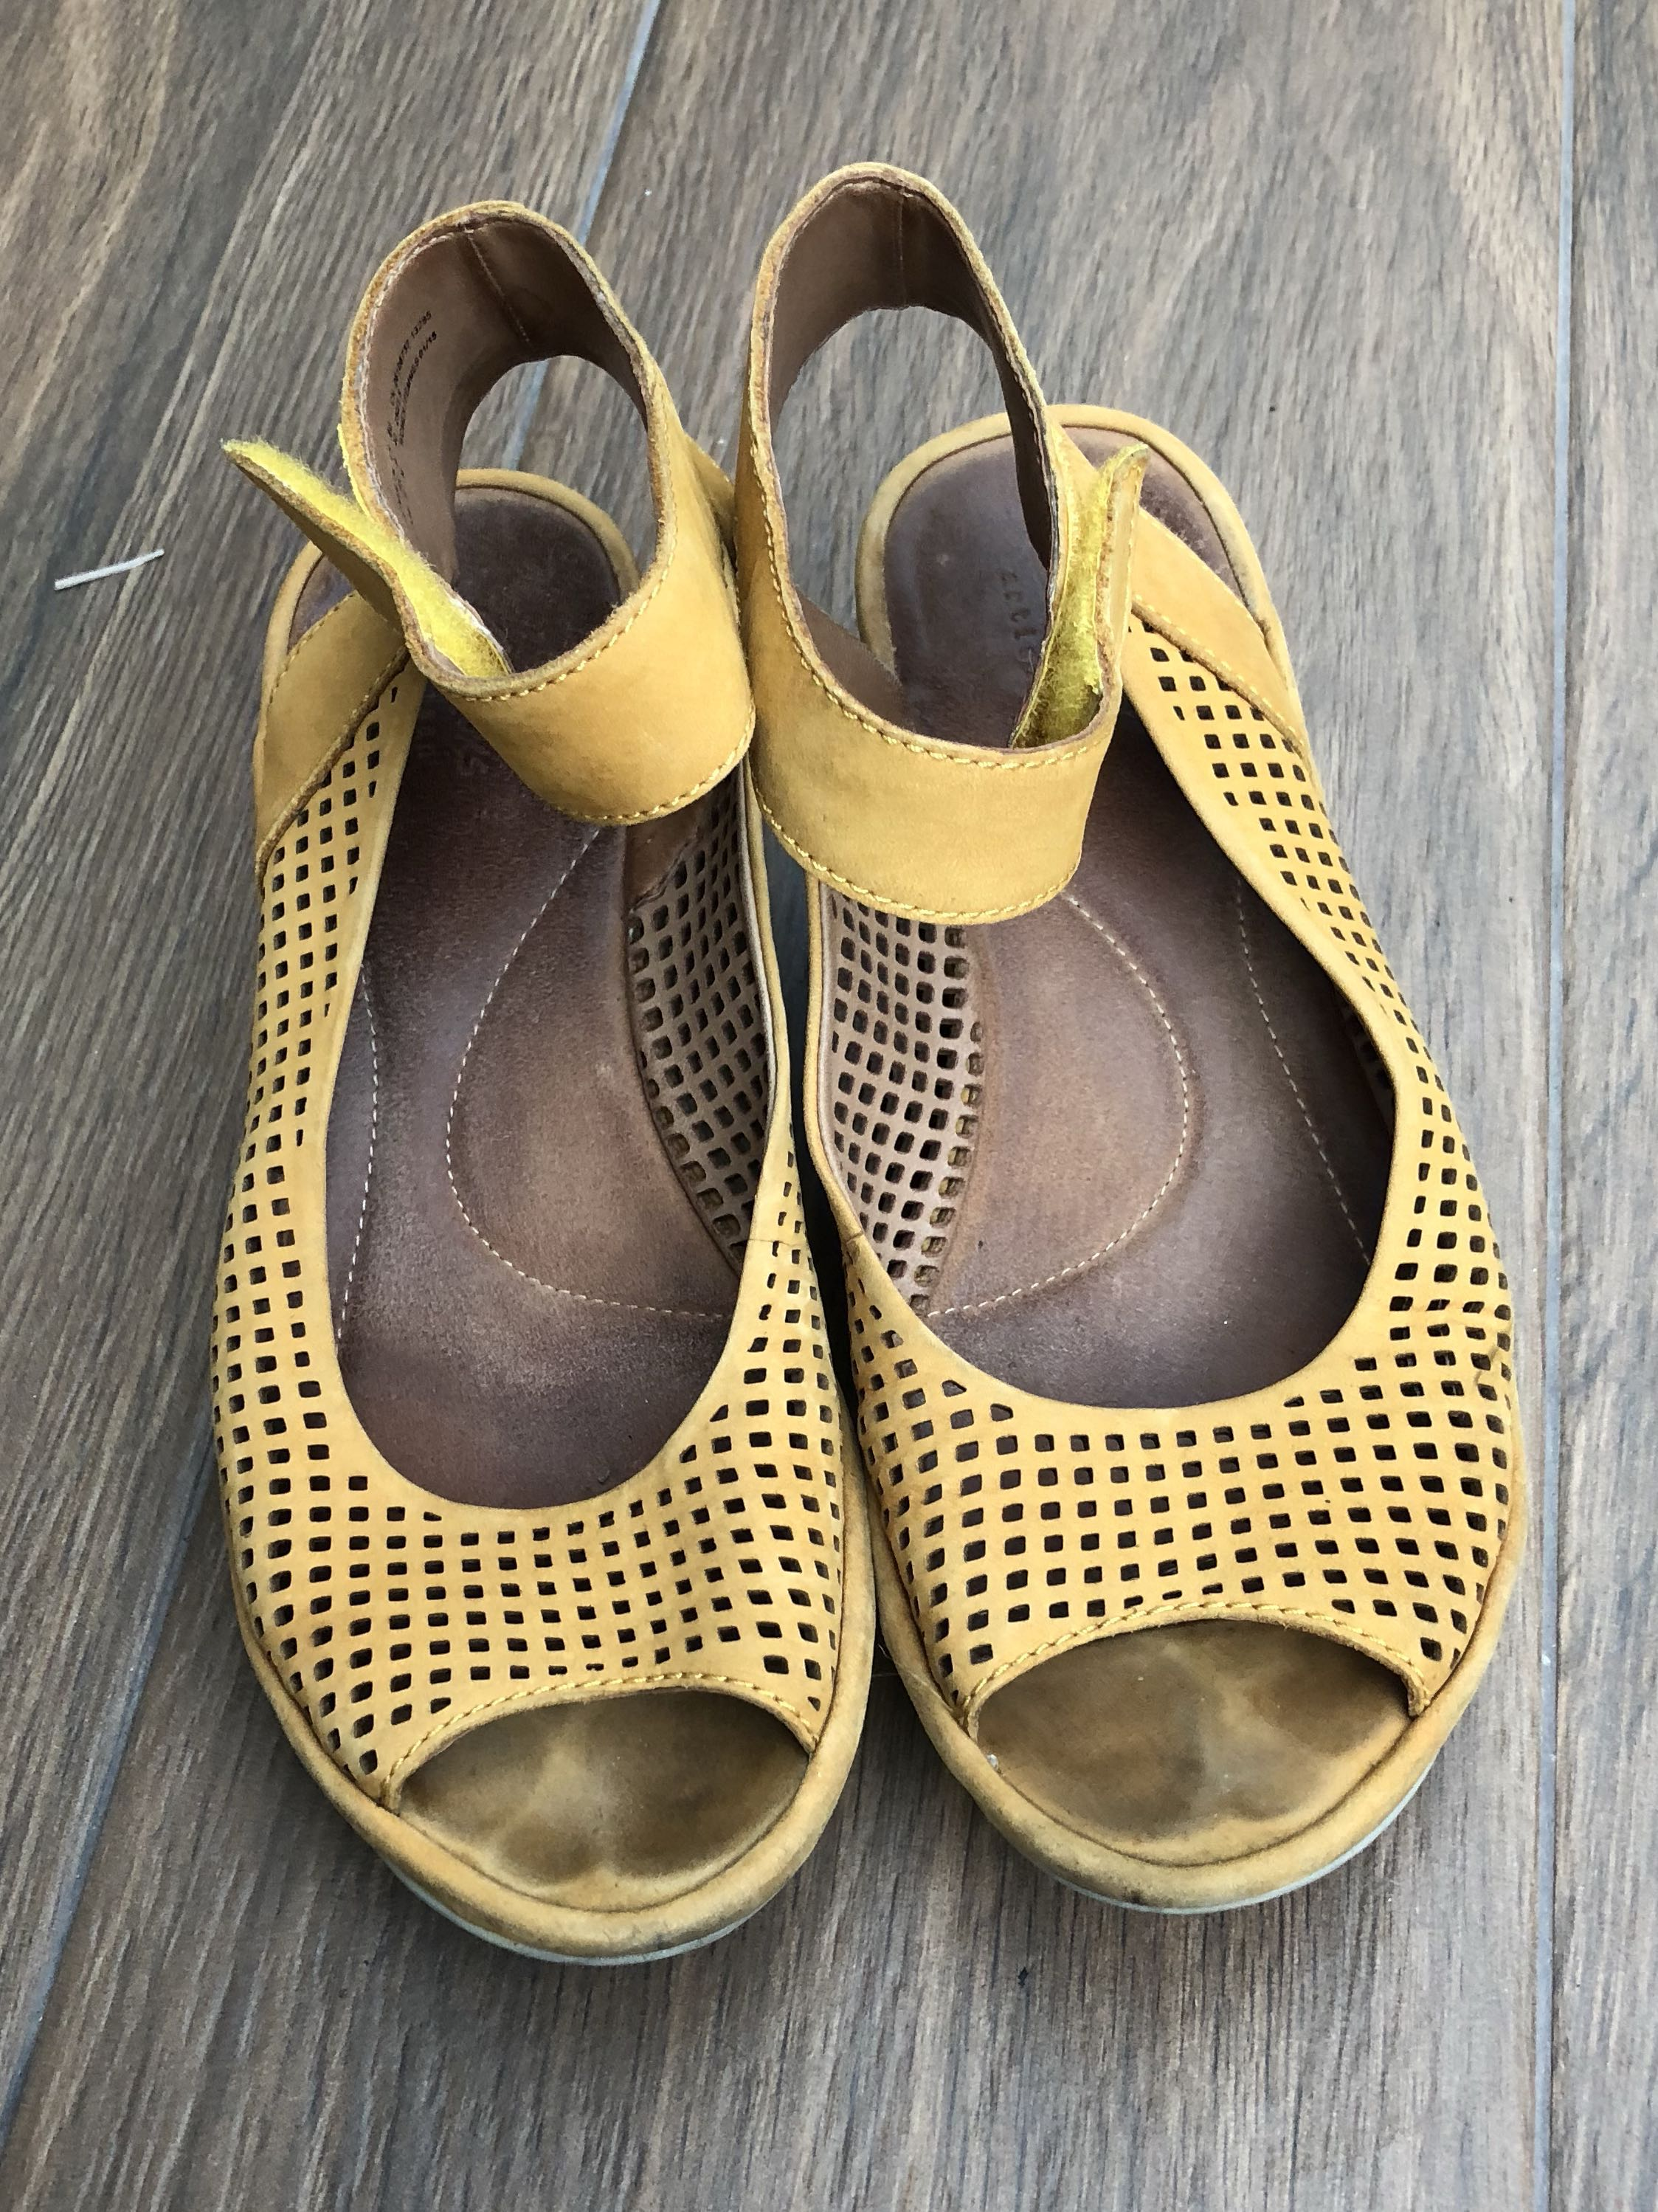 Clarks sandals in mustard yellow